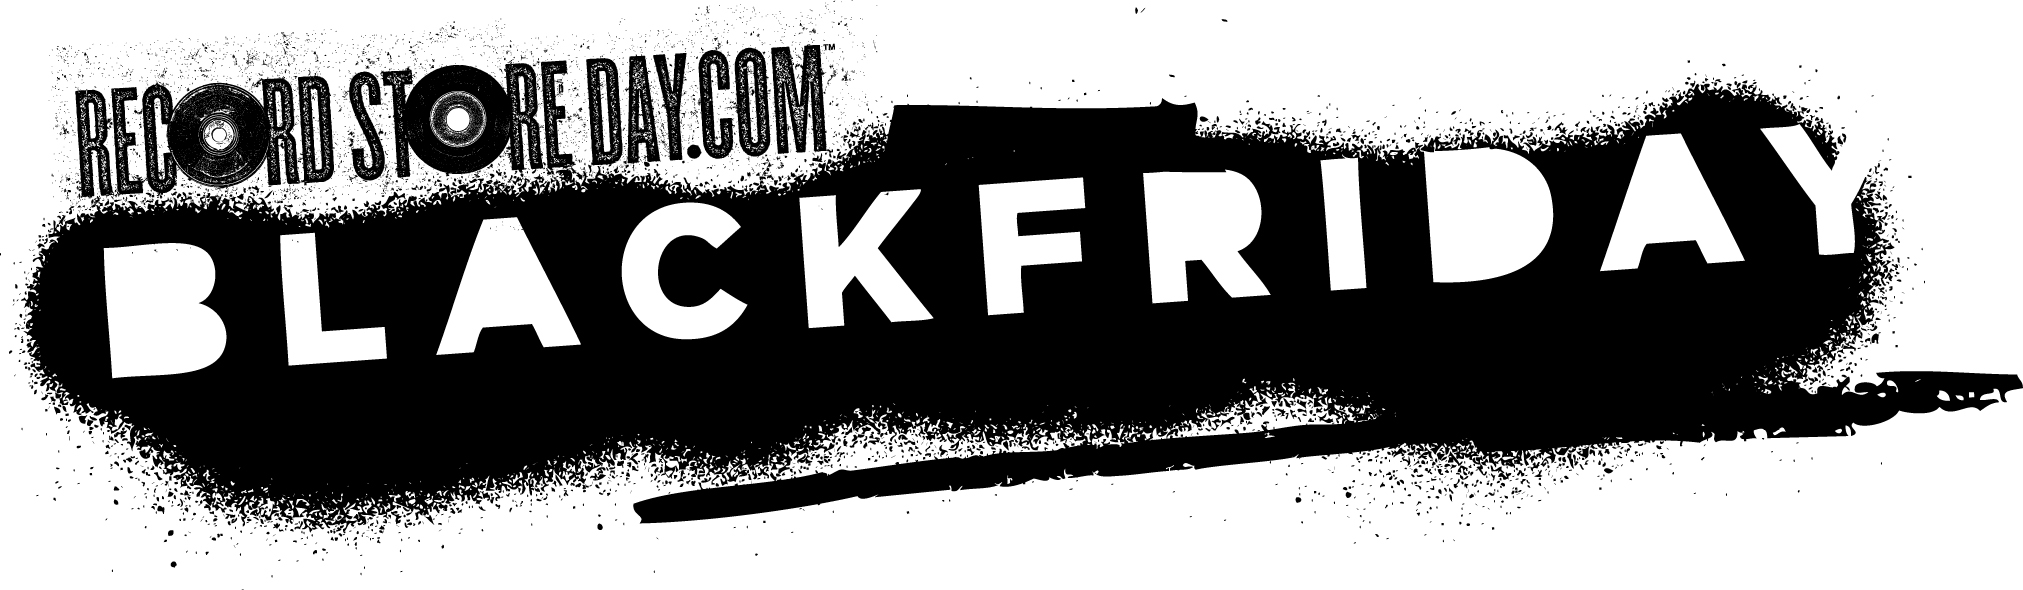 852bbcbbd Record Store Day s Black Friday